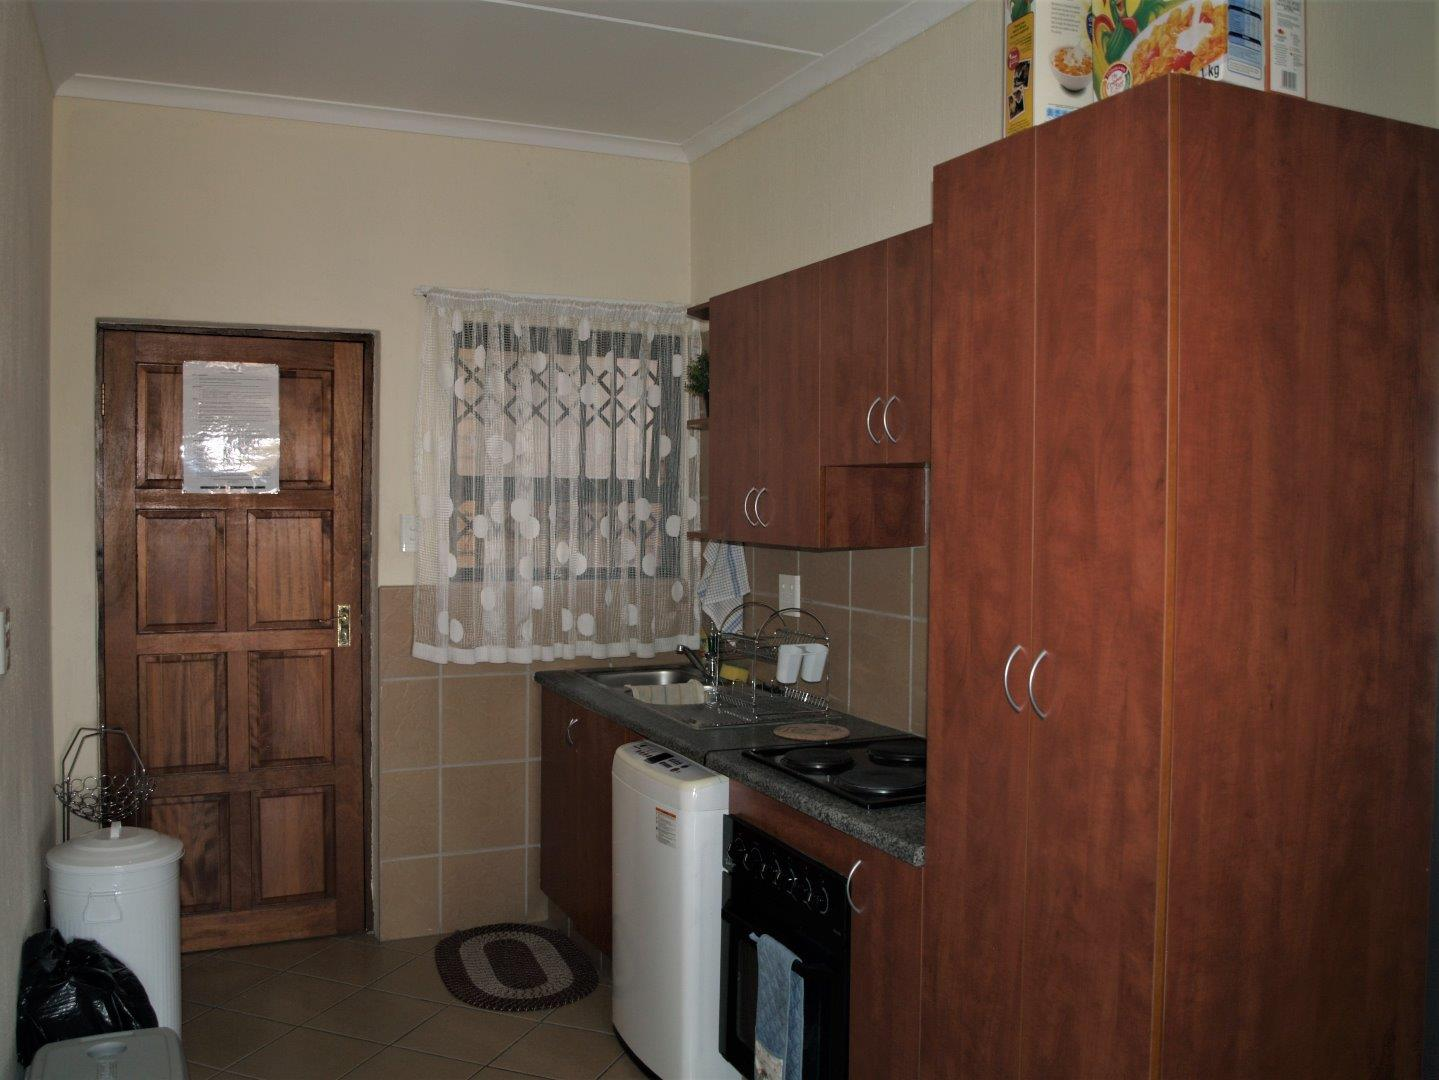 3 Bedroom Apartment for Sale in Onverwacht, Lephalale - Limpopo